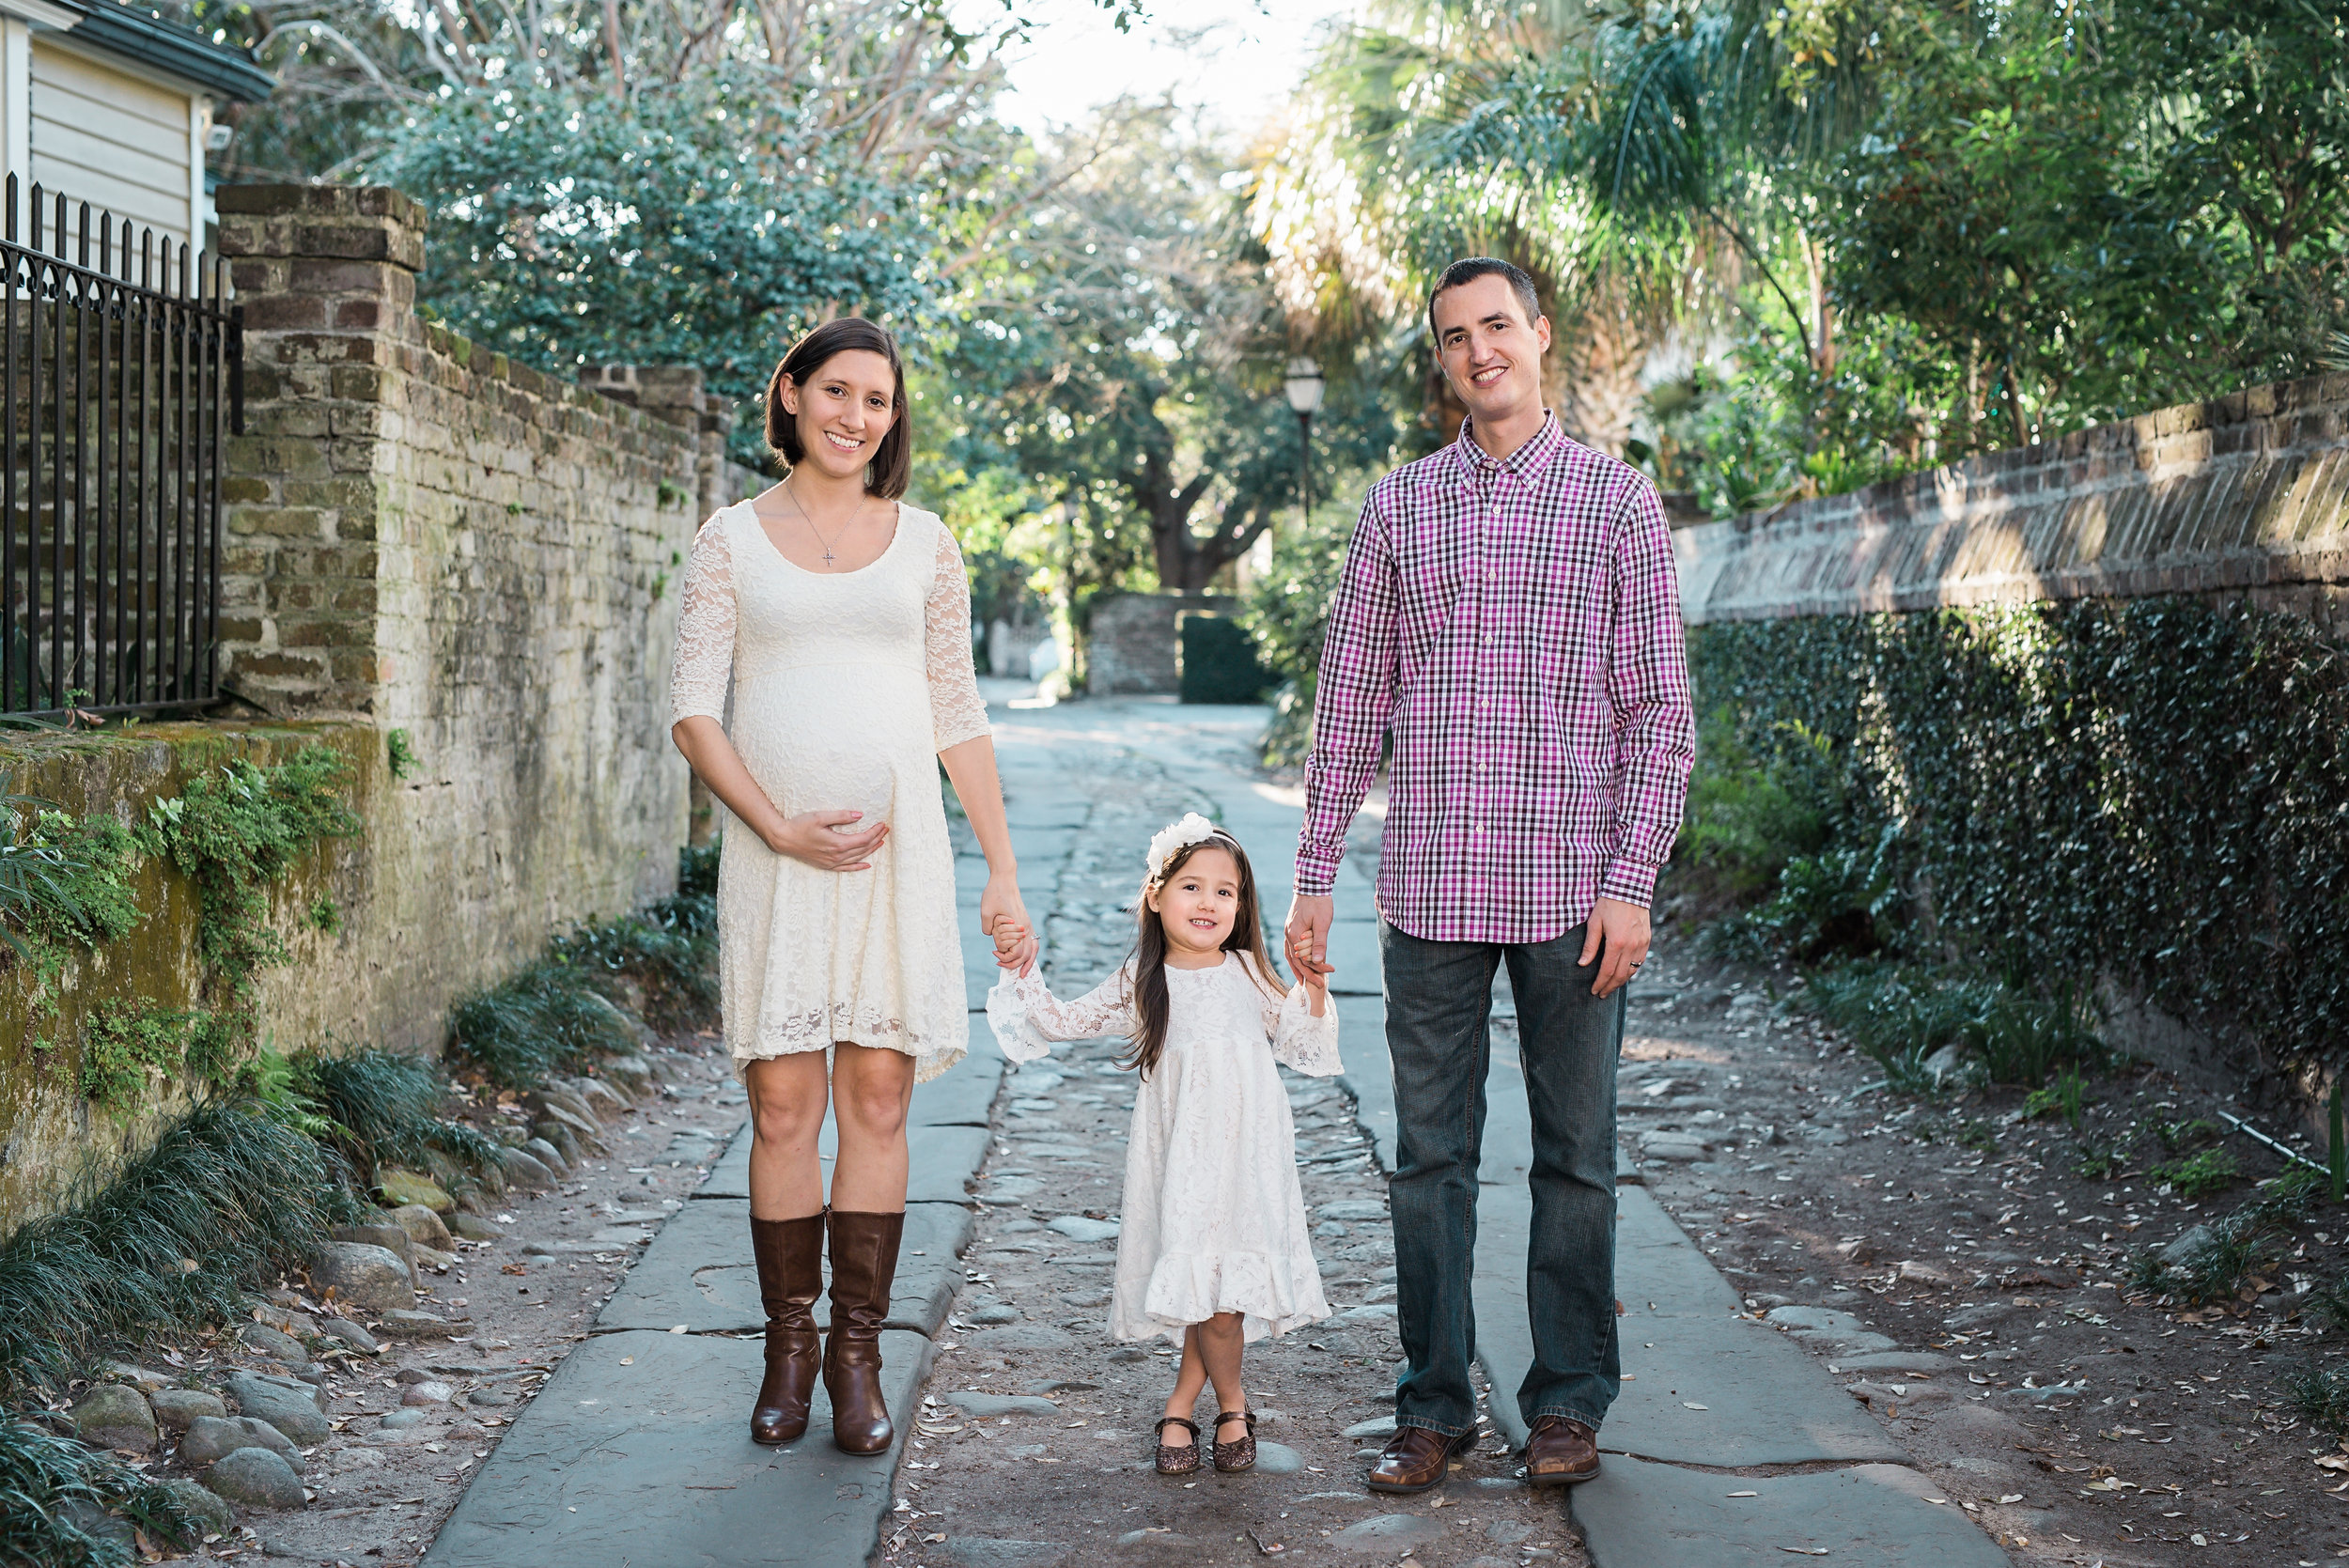 Charleston-Maternity-Photographer-Following-Seas-Photography-3075 copy.jpg